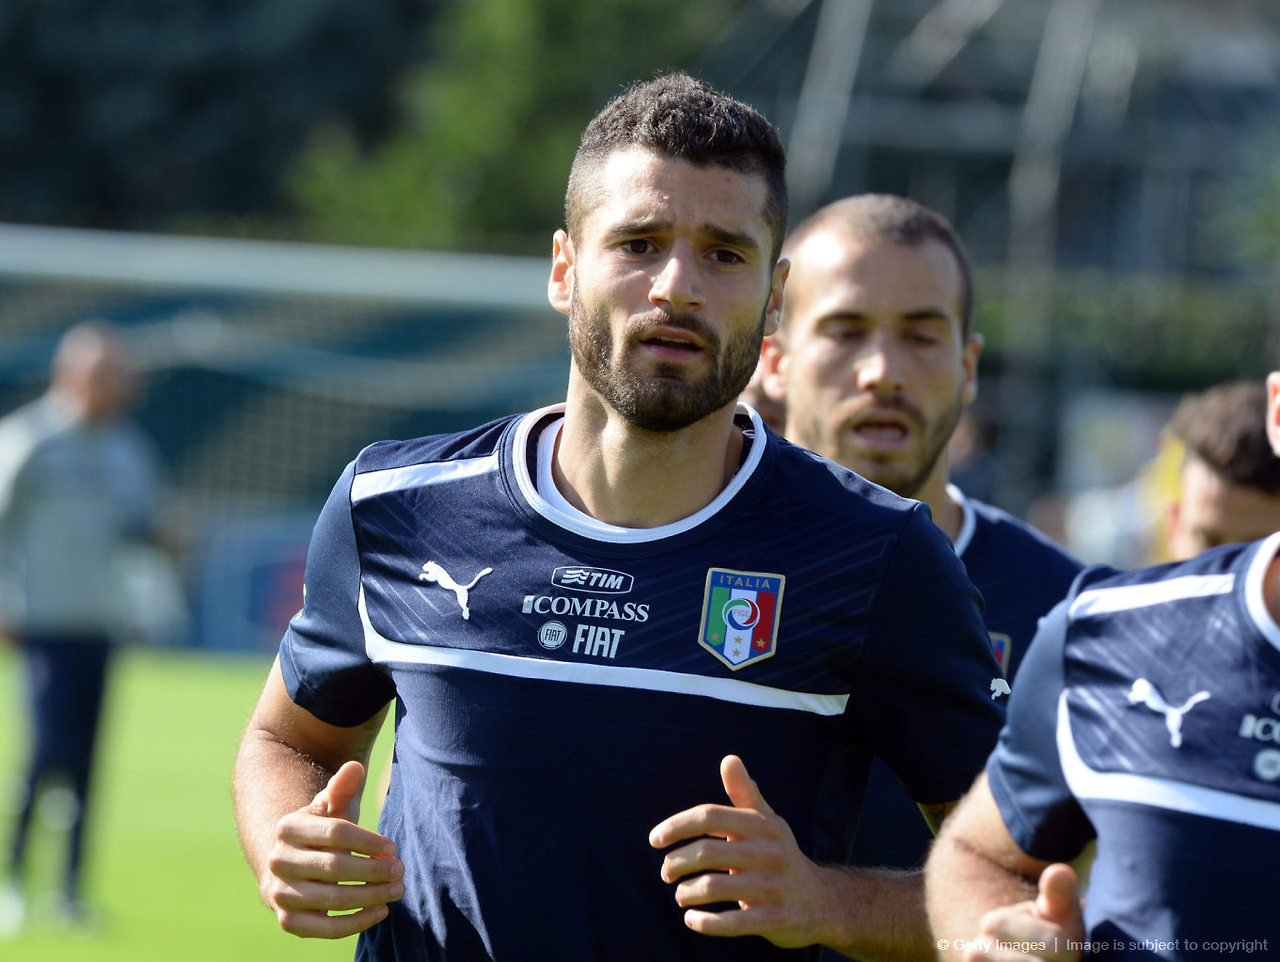 Candreva, interesat de o mutare in Anglia